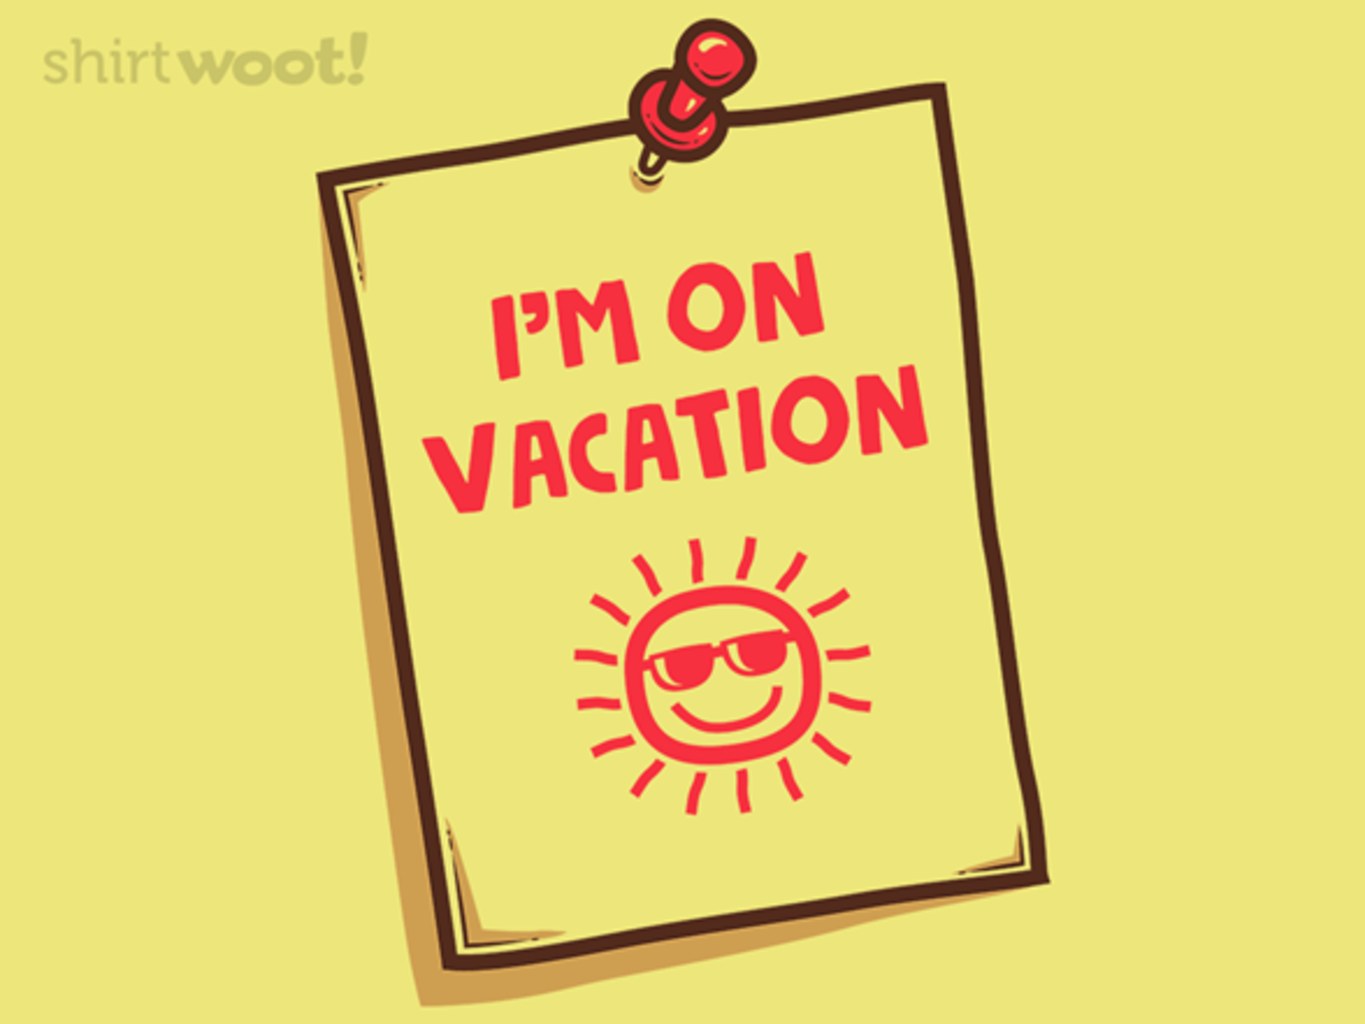 Woot!: Vacation Memo - $8.00 + $5 standard shipping